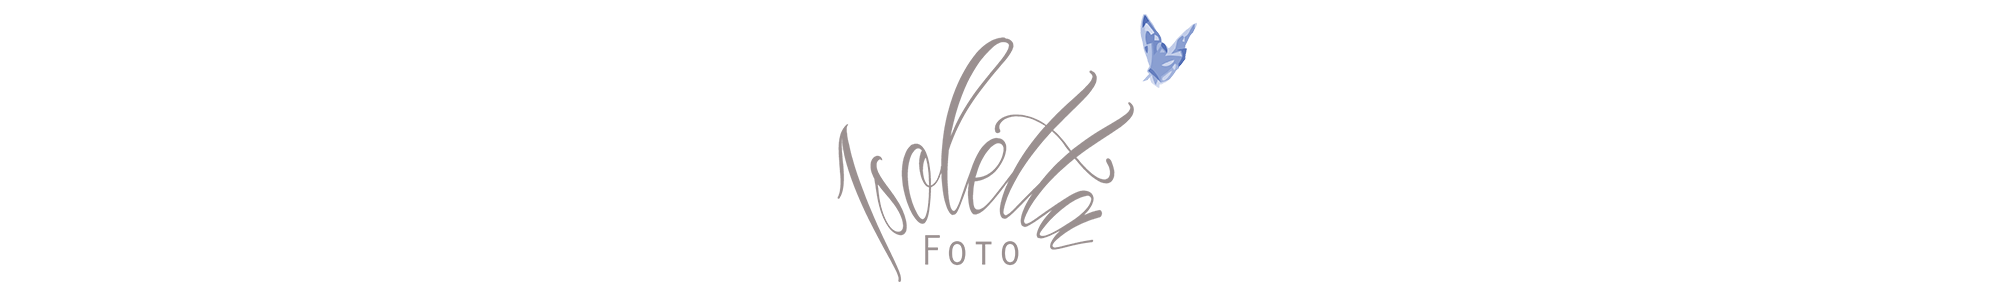 Isoletta – Bröllopsfotograf, nyföddfotograf och barnfotograf i Bohuslän